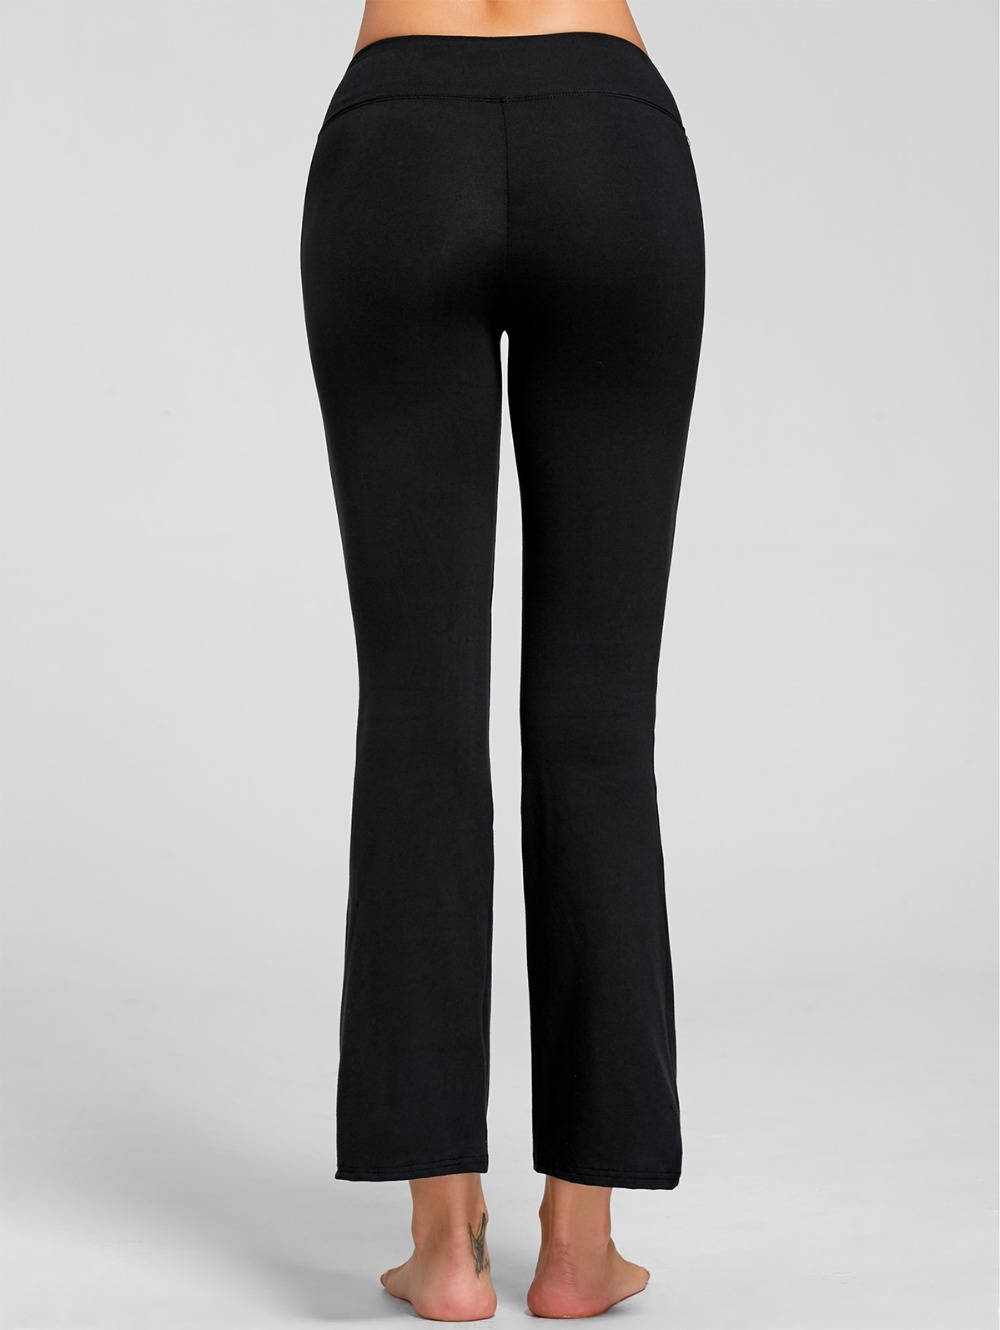 Compare Prices on Pocket Yoga Pants- Online Shopping/Buy Low Price ...